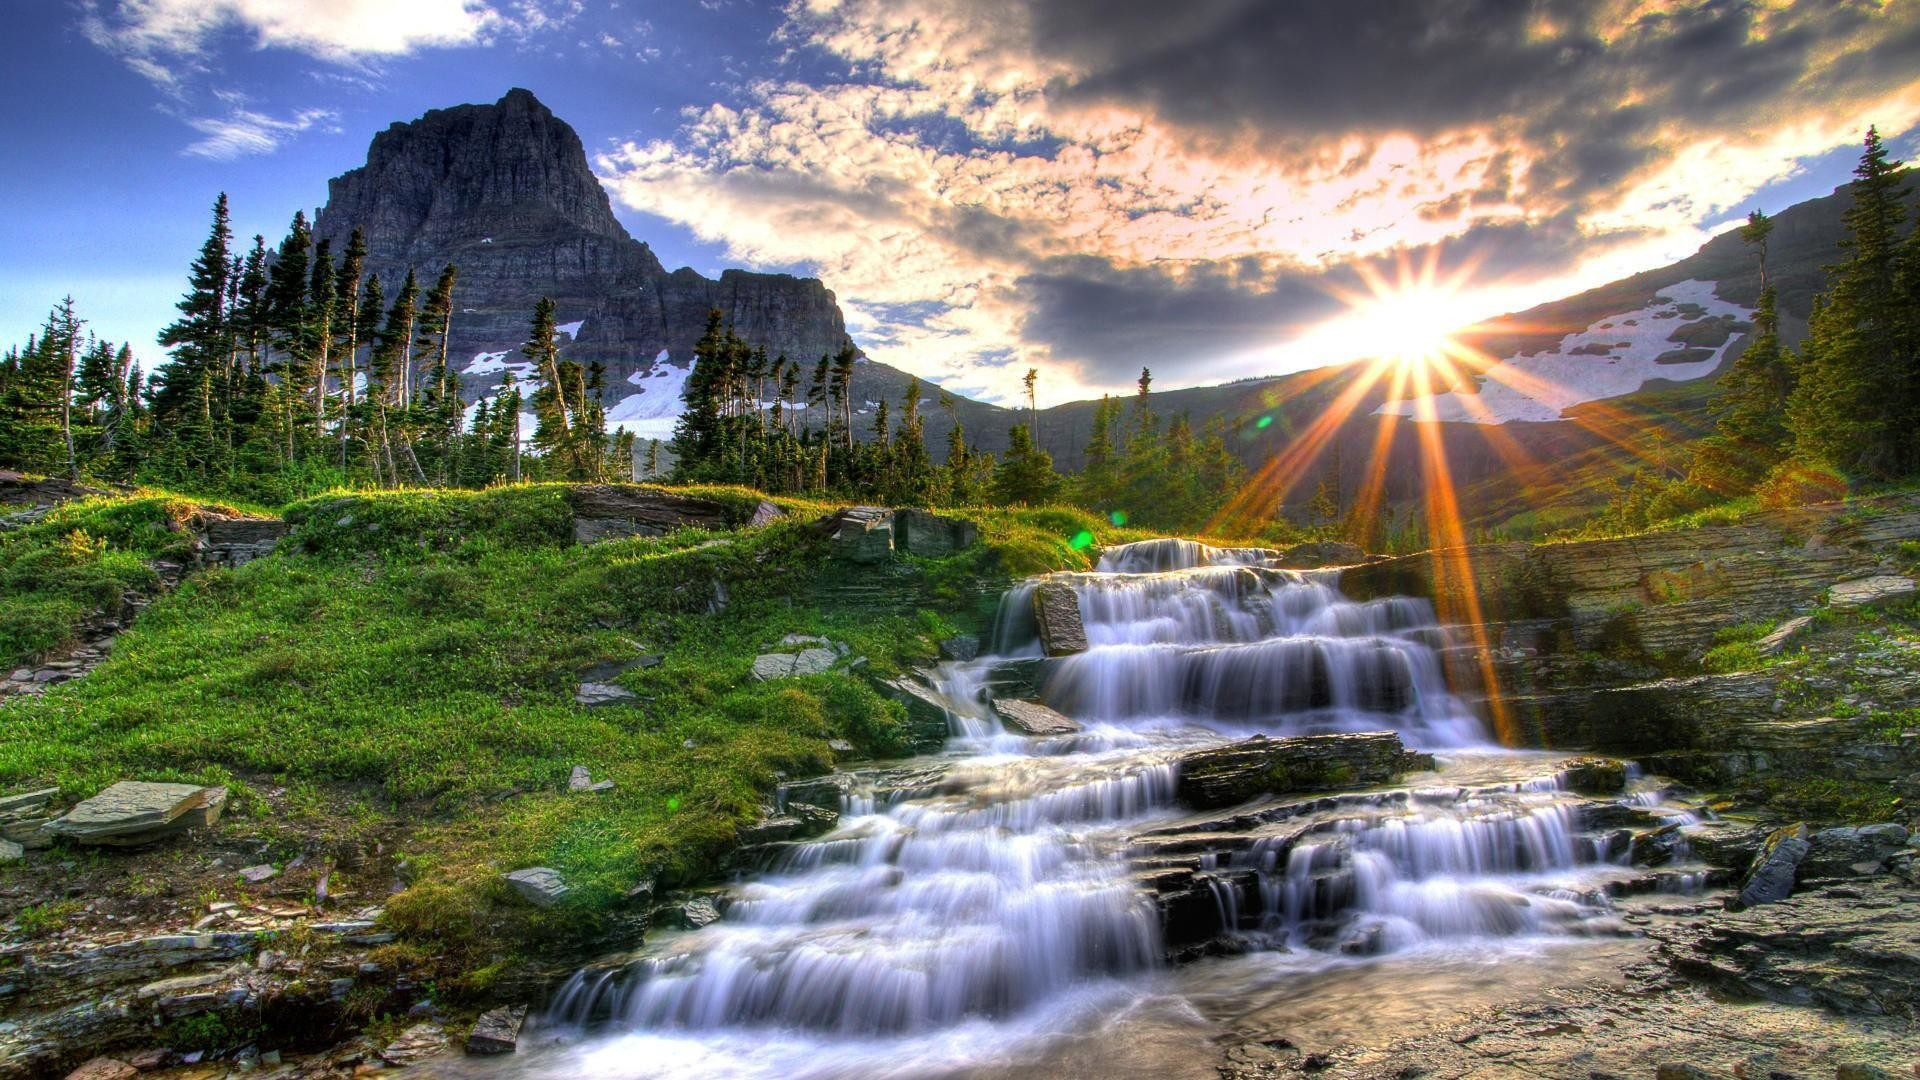 Background Landscapes Beautiful Pictures Scenery Walls Nature Hd 1920x1080 Wallpaper Teahub Io